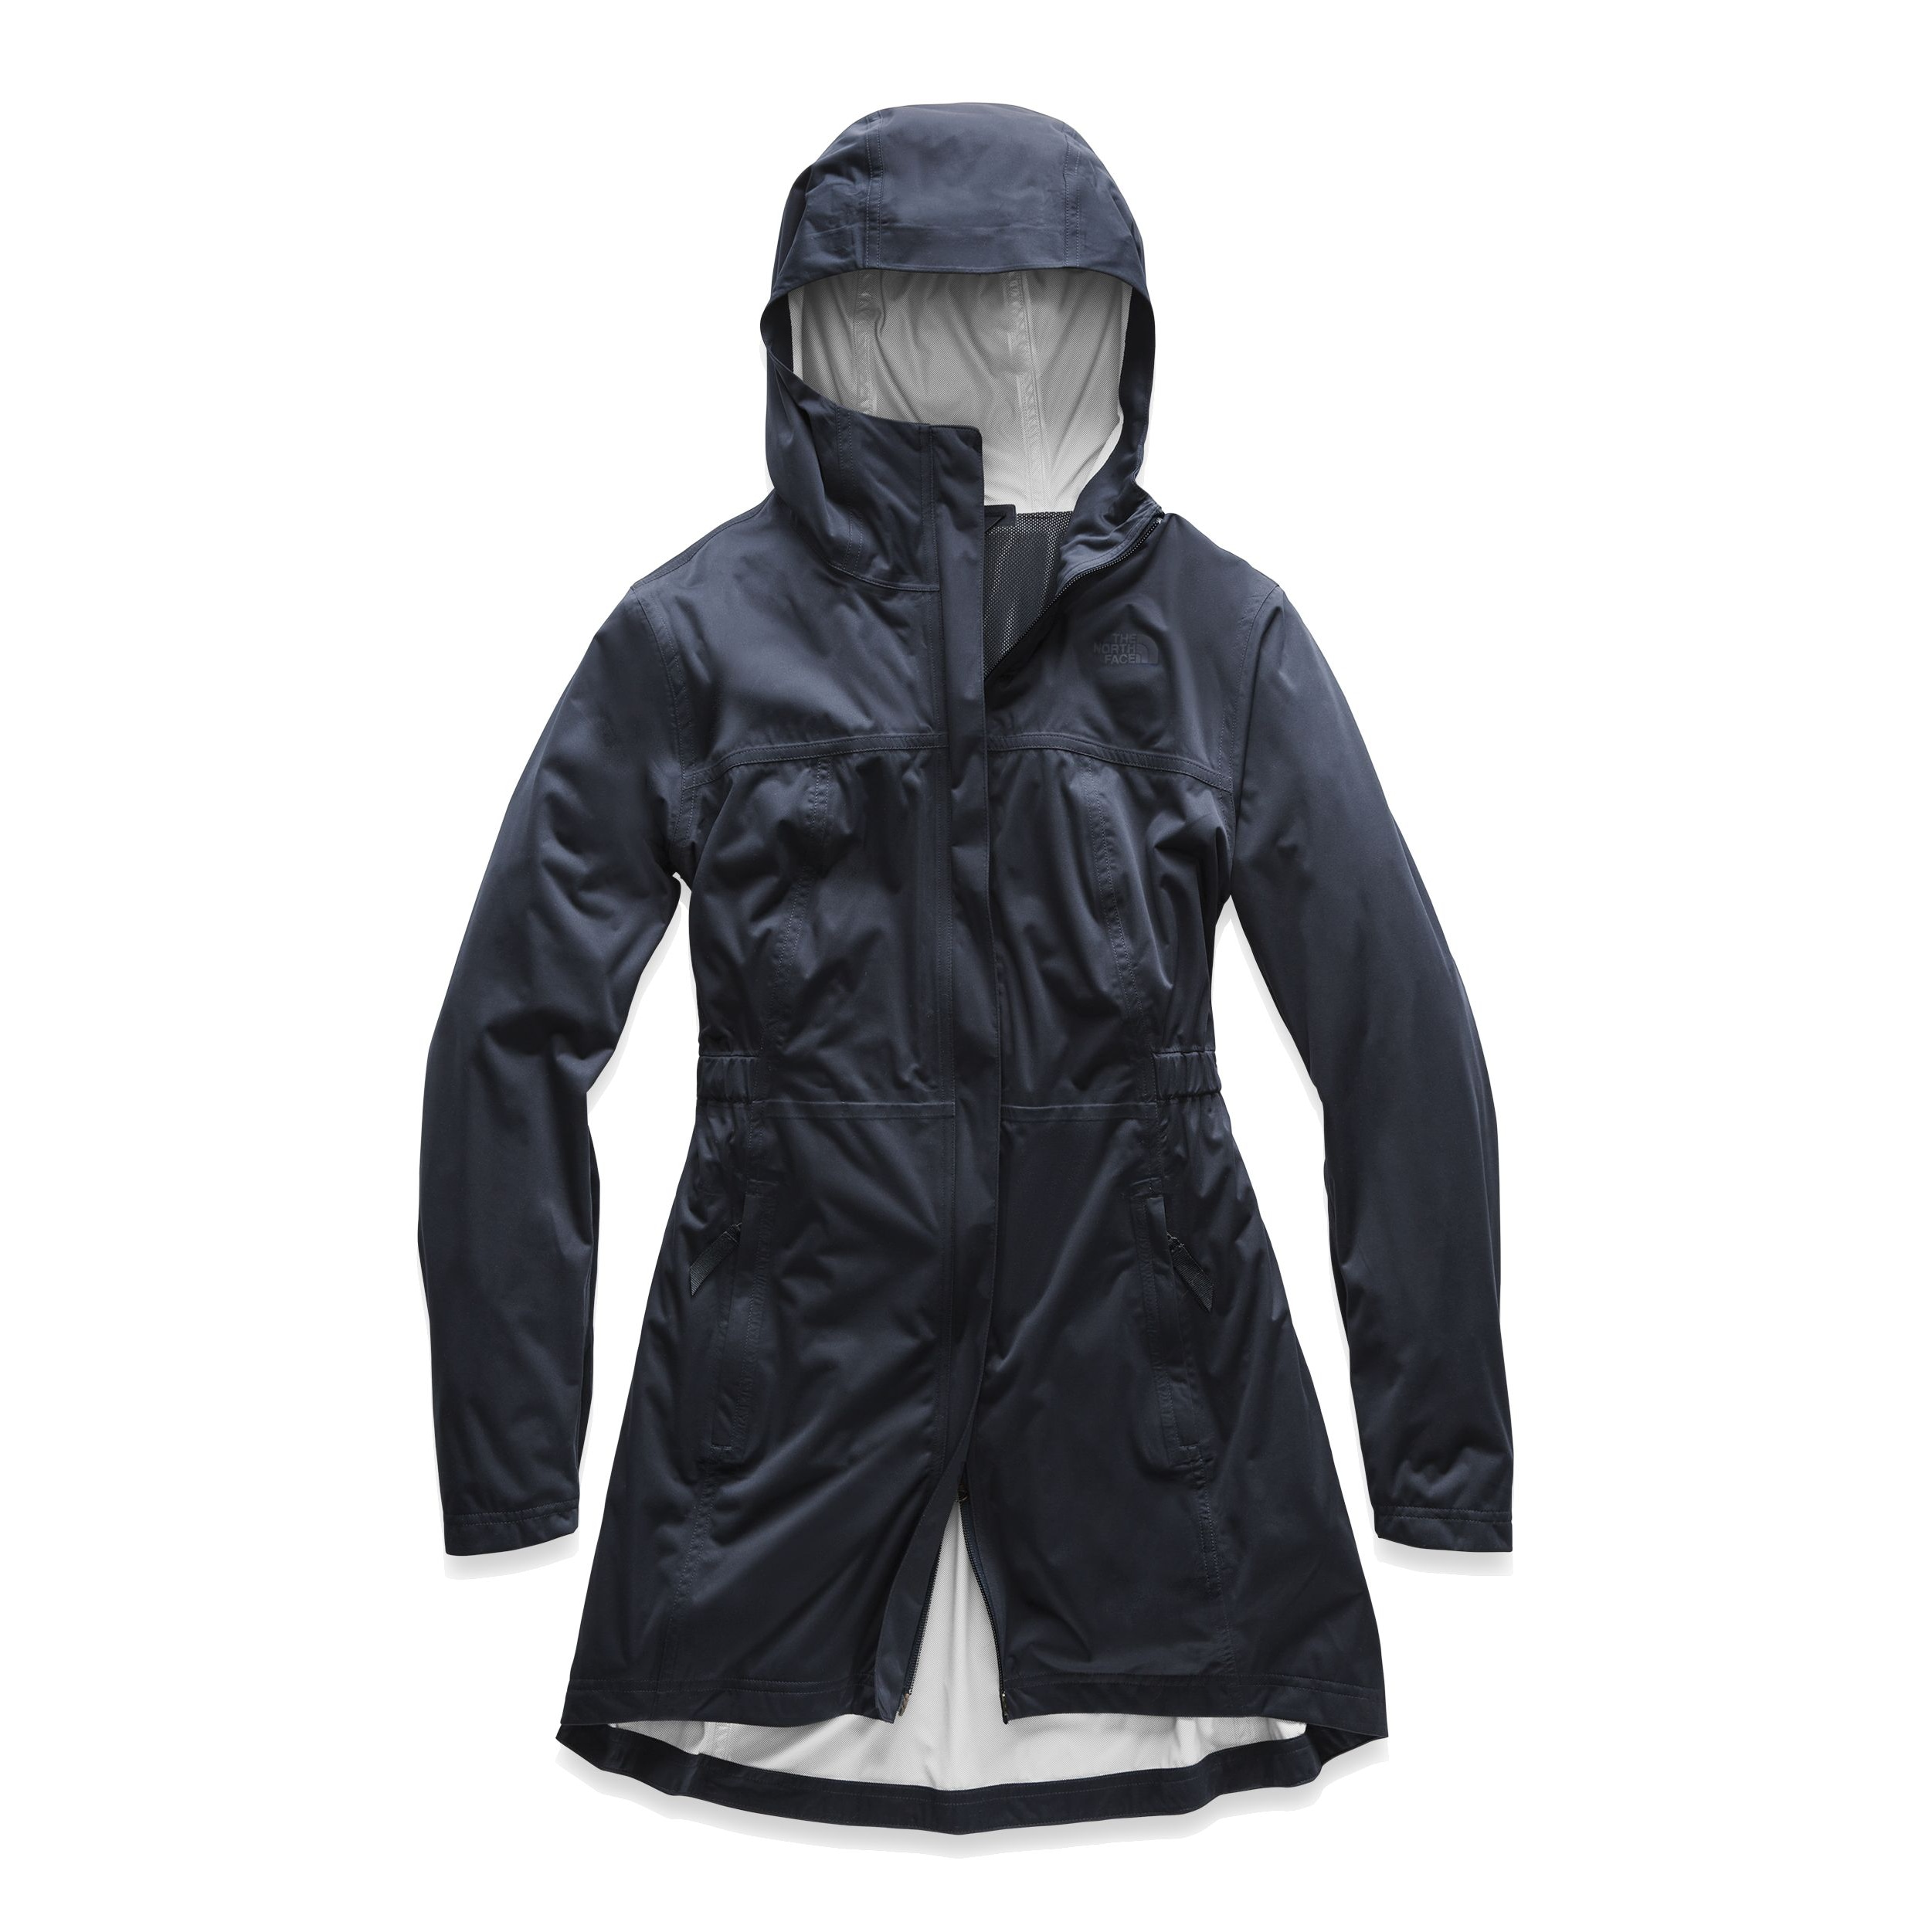 Allproof Stretch Parka - Women's